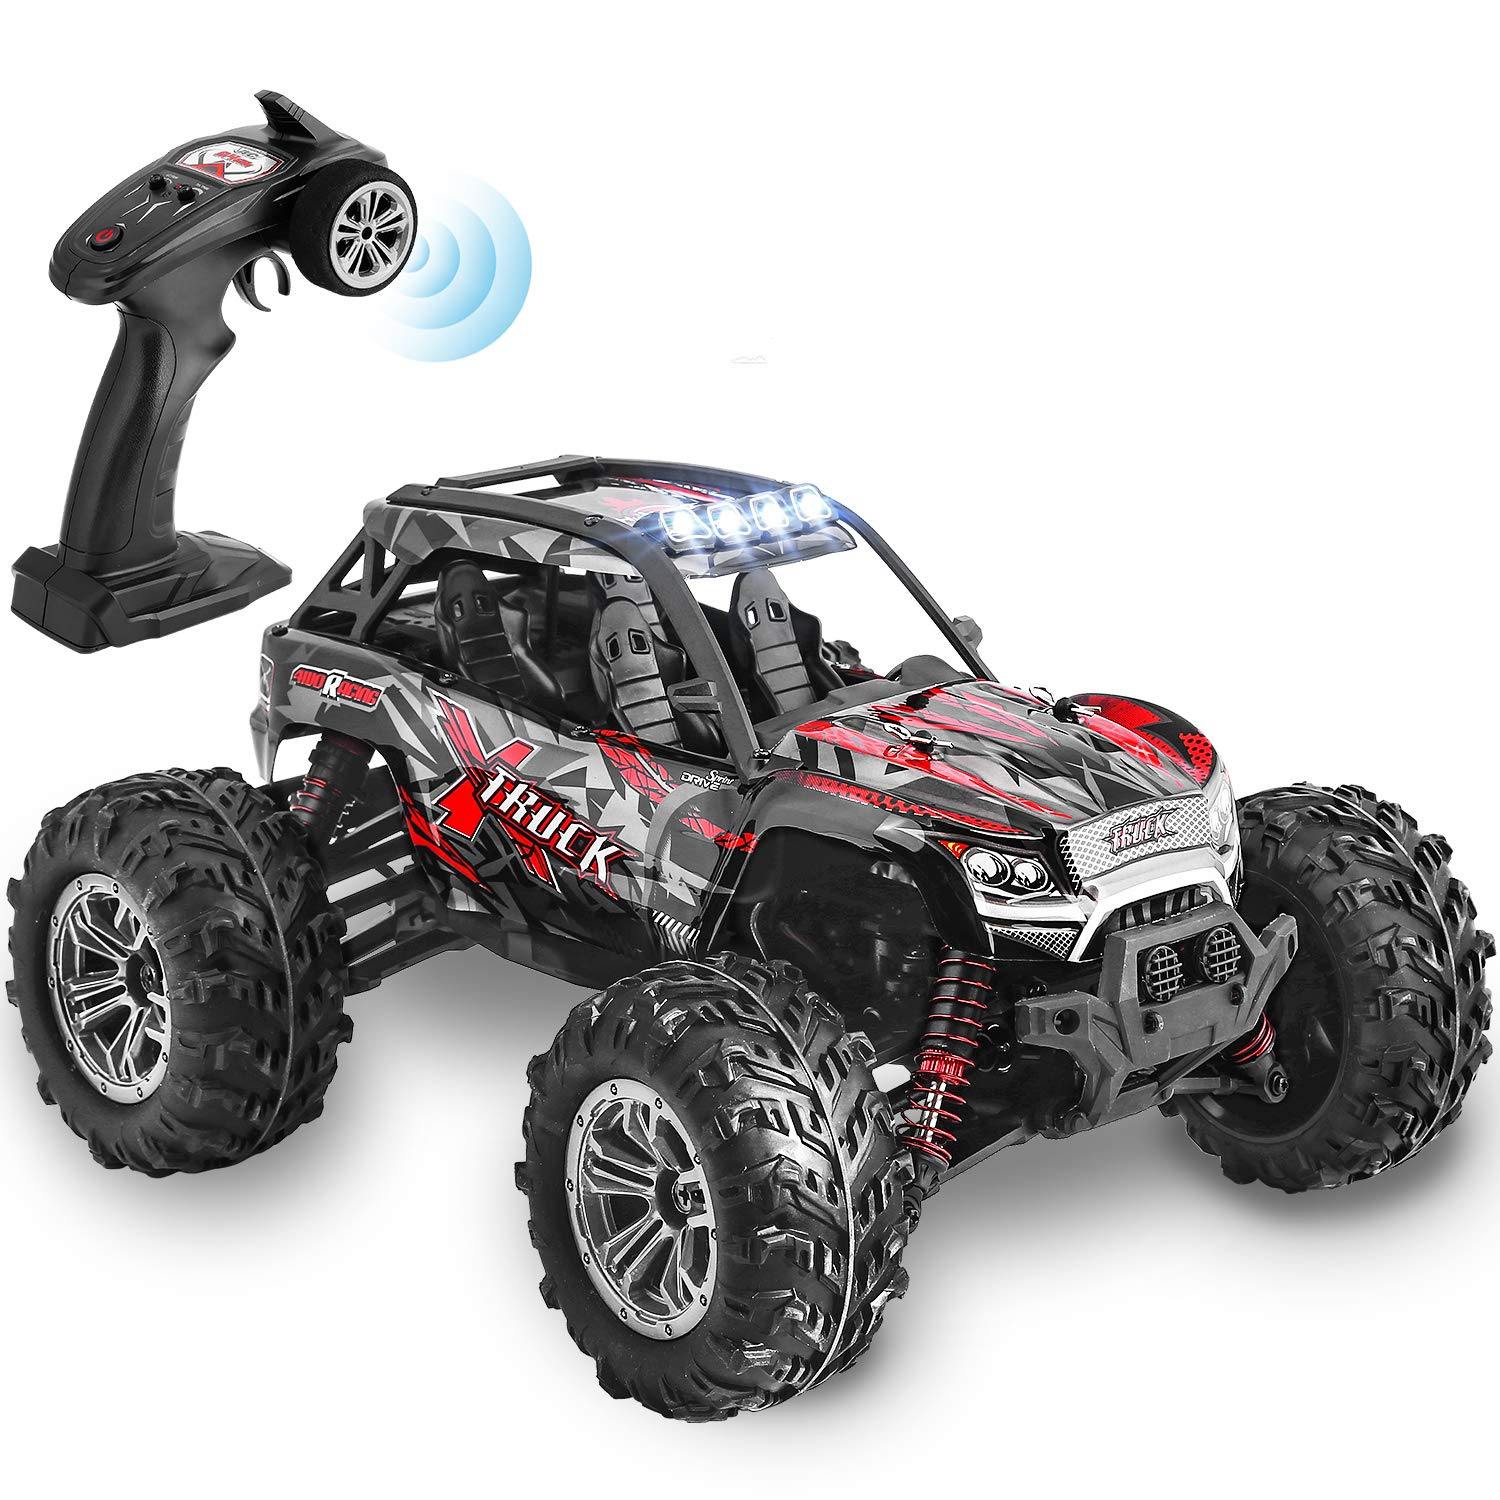 Hishertoy 4wd Rc Trucks For Adults Ipx4 Waterproof Rc Cars High Speed Remote Control Cars 4x4 For Boys Girls 1 16 36km H Off Road Rc Vehicles For Kids Monster Truck Buggy Rock